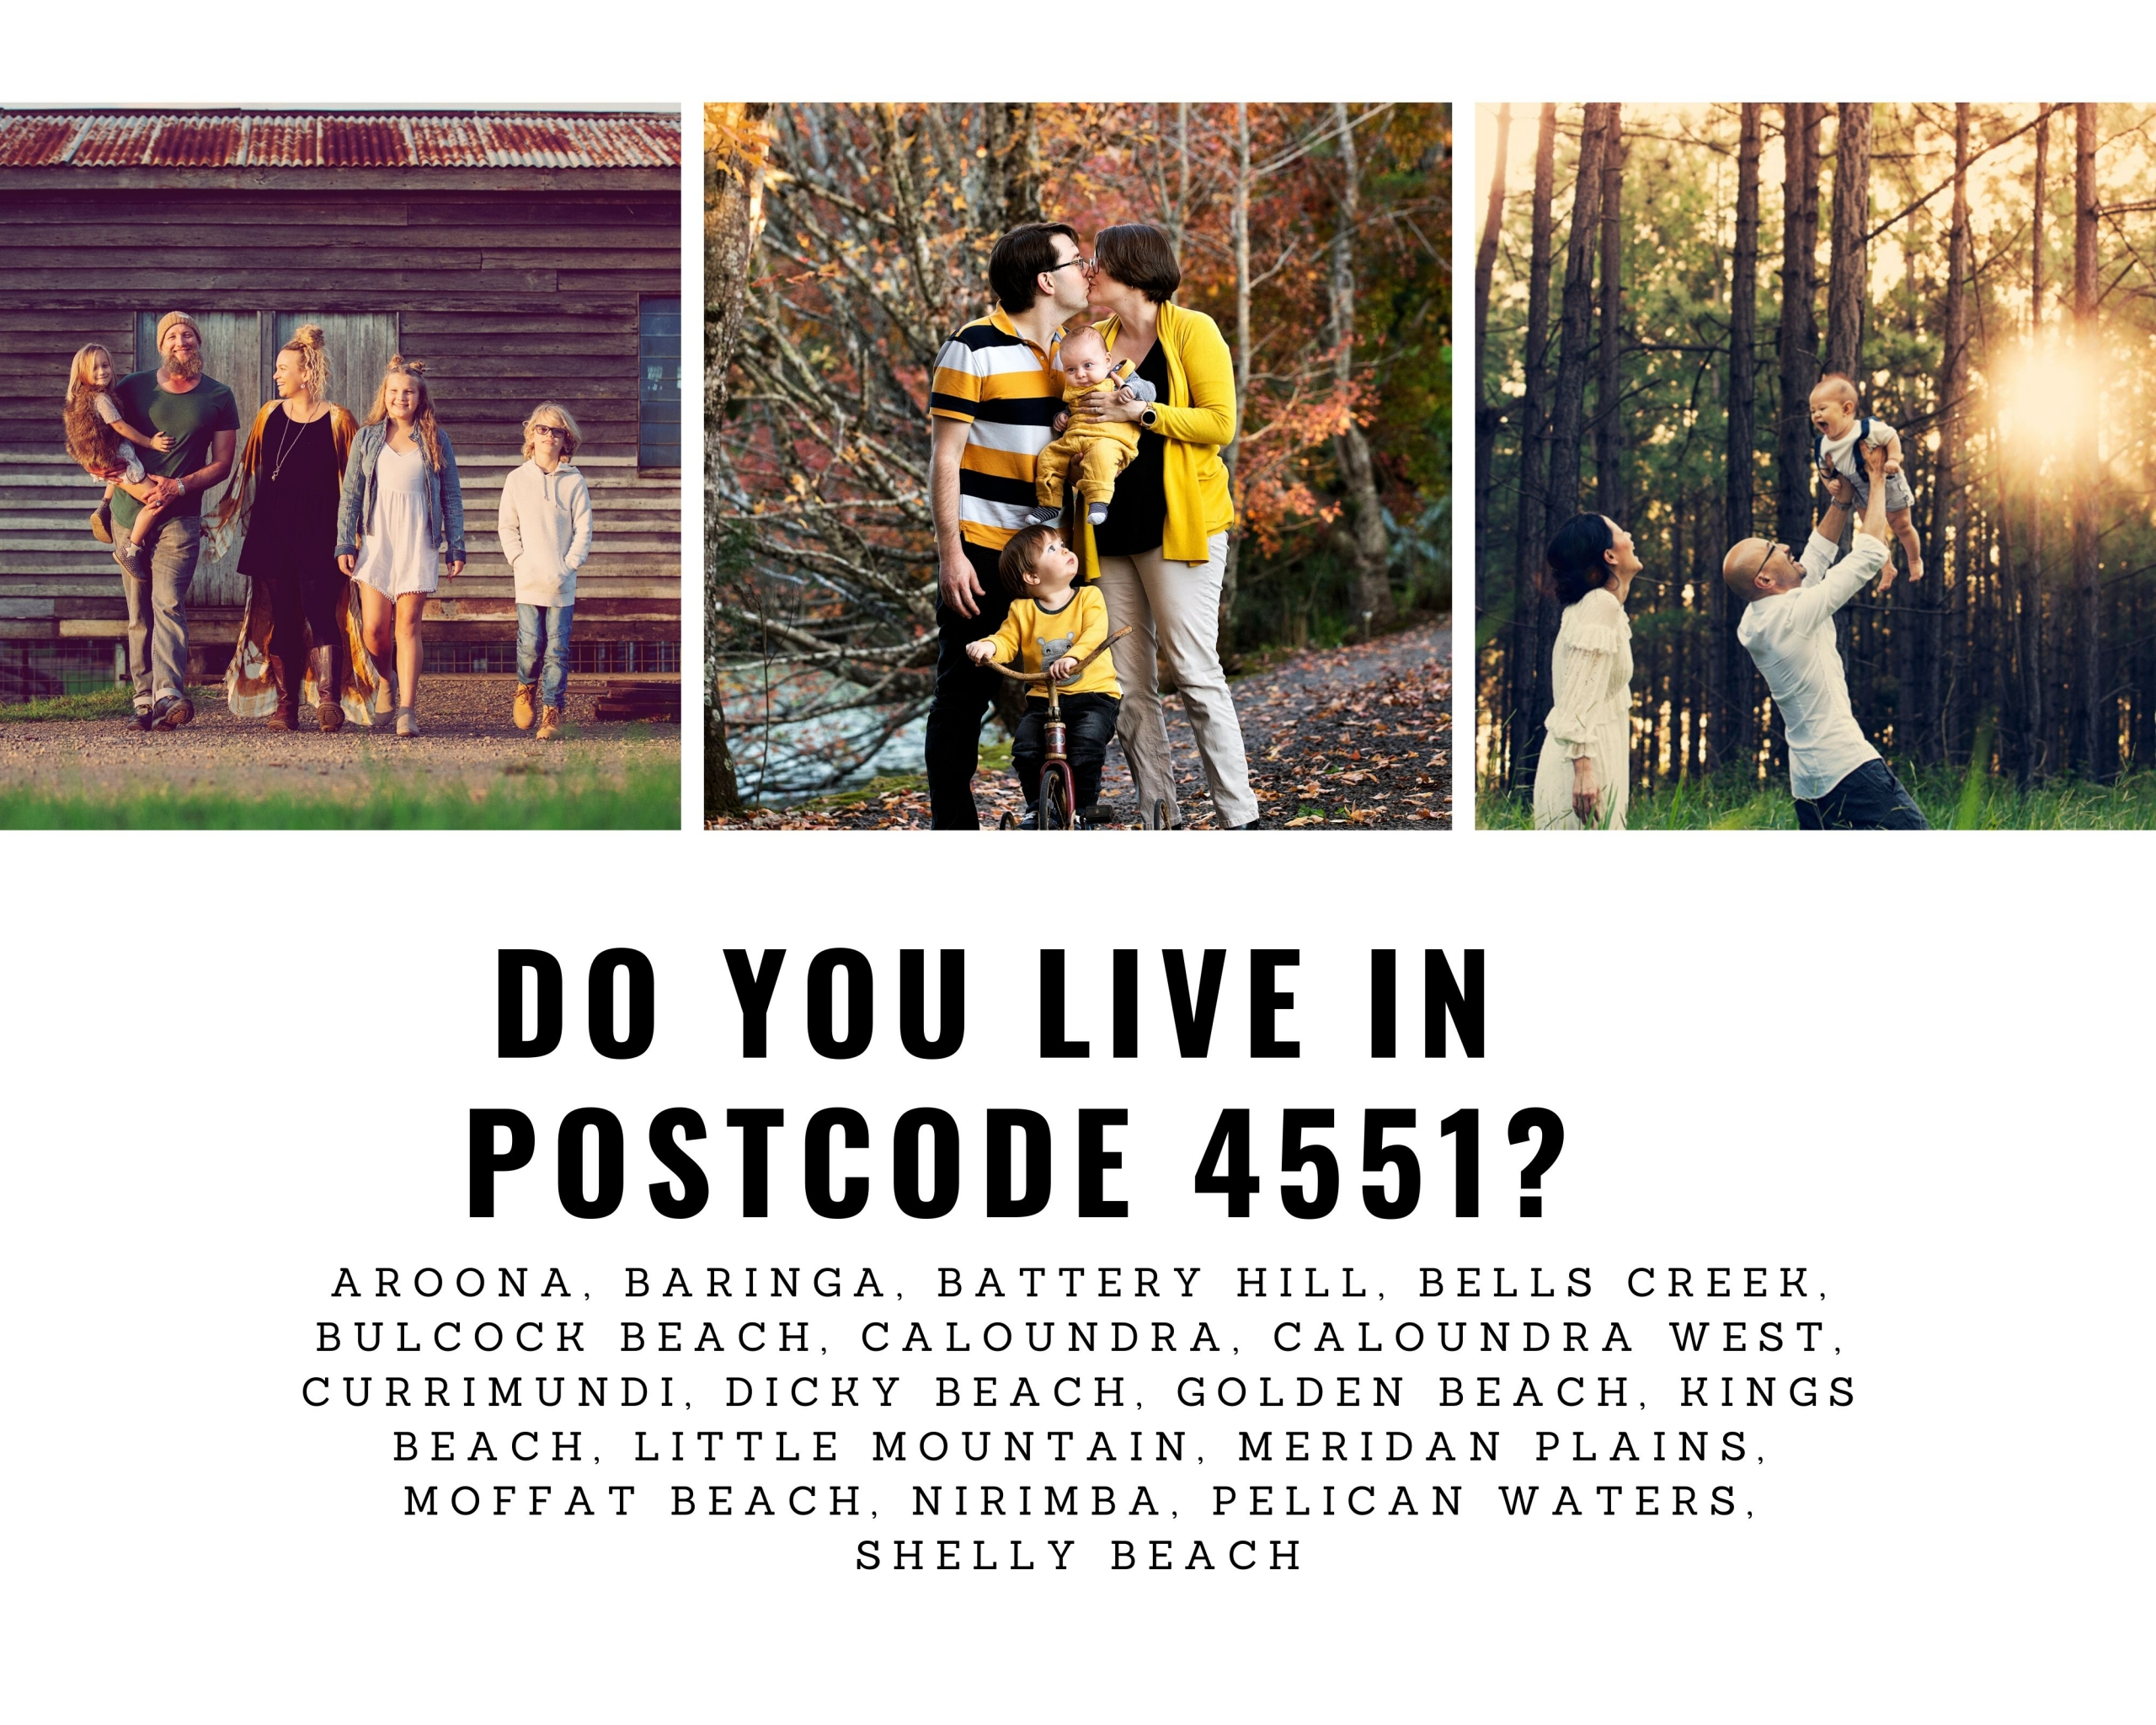 Do you live in Postcode 4551?